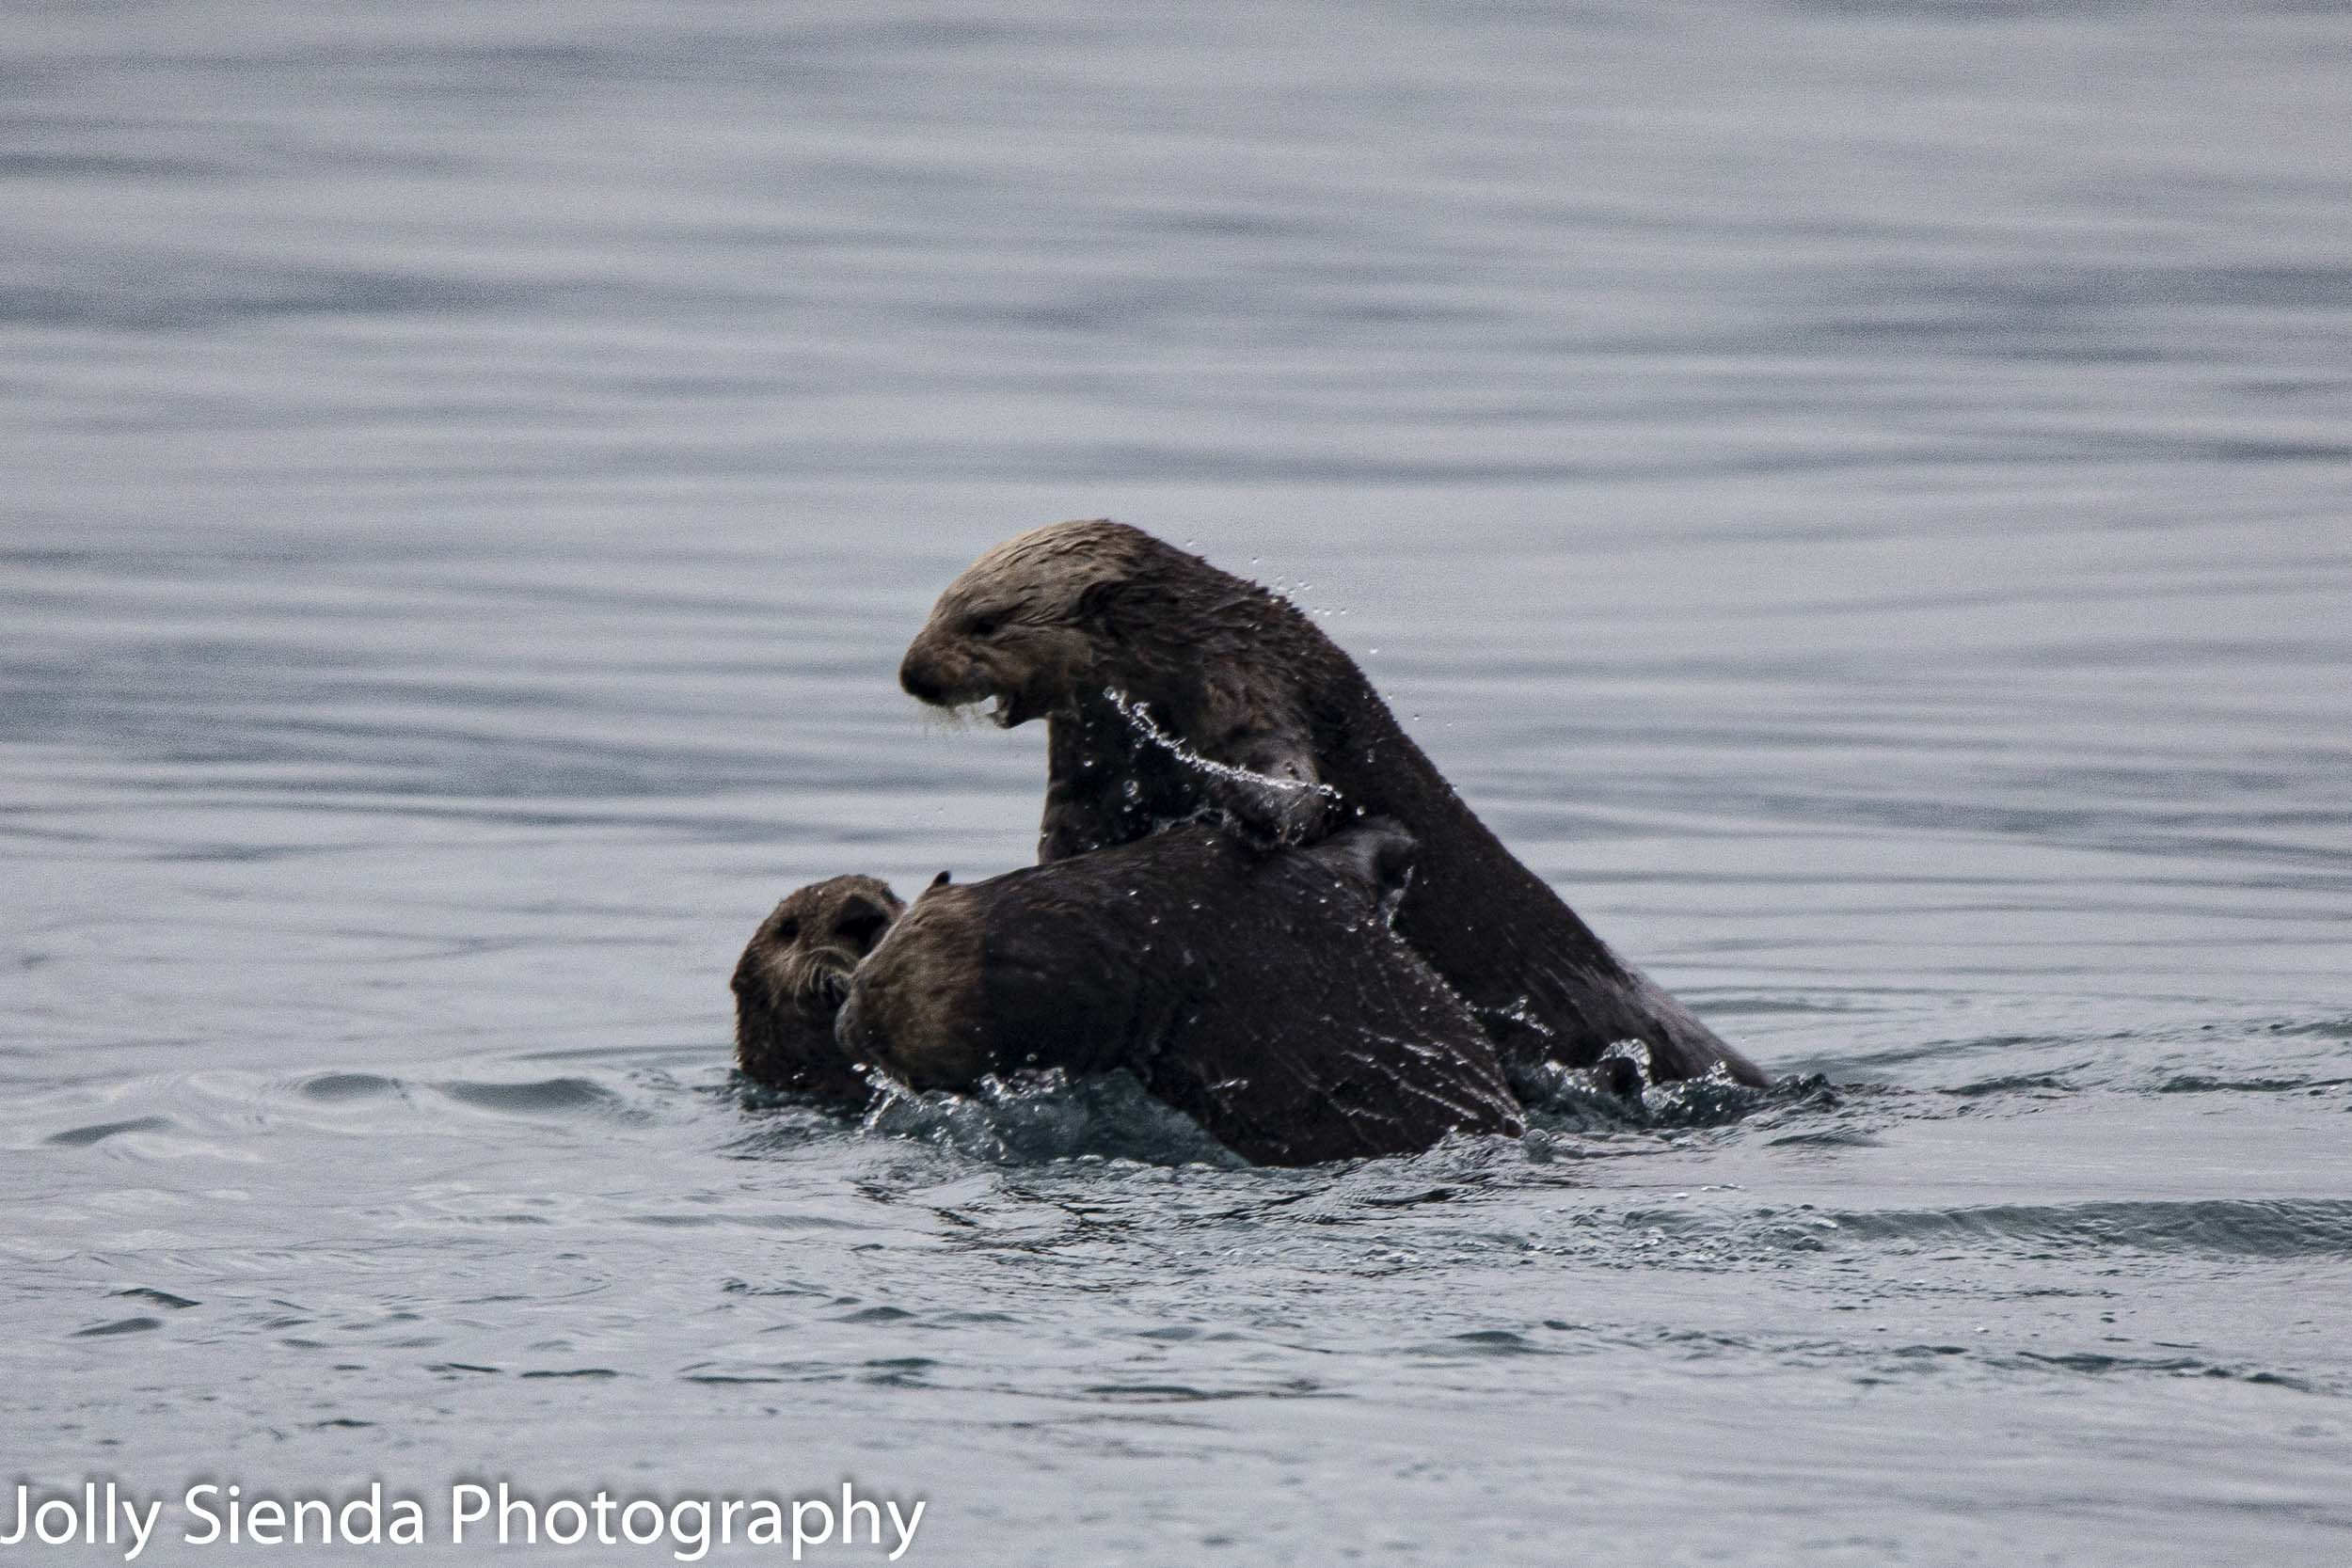 Sea Otters at play, Prince William Sound, Valdez, Alaska